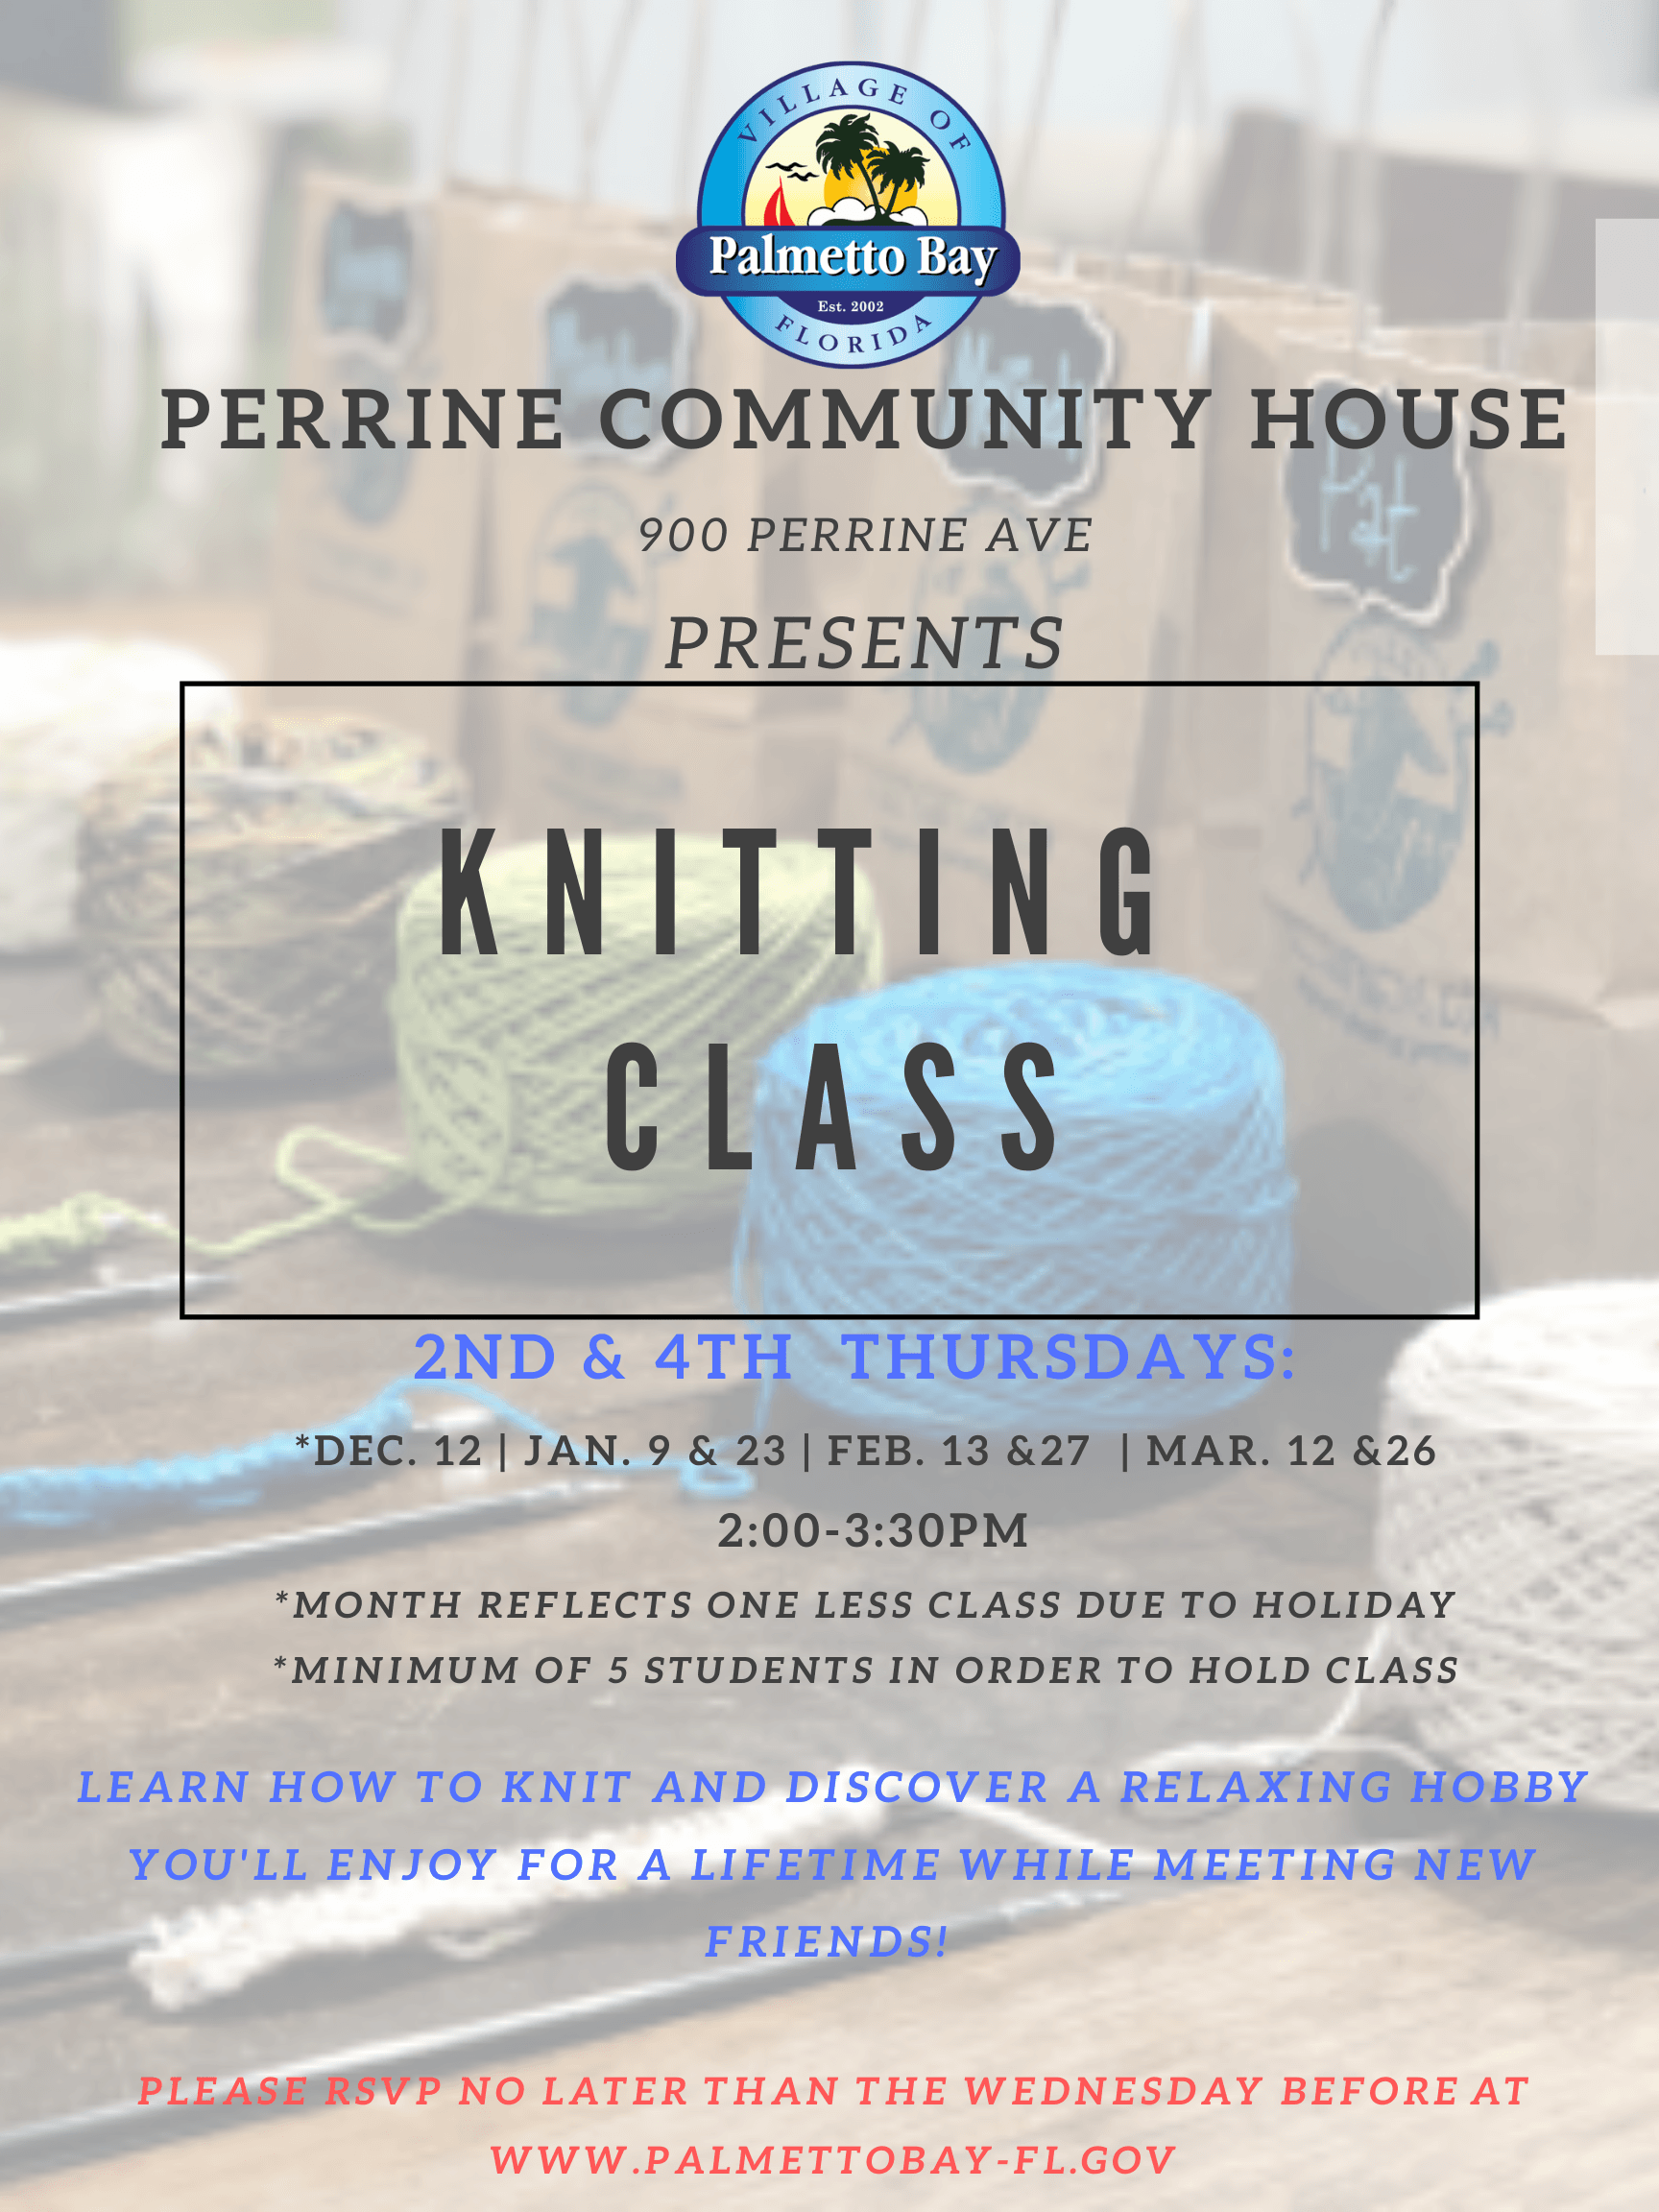 Knitting Class every 2nd & 4th Thursday of the month at Perrine Community House from 2p-3:30p